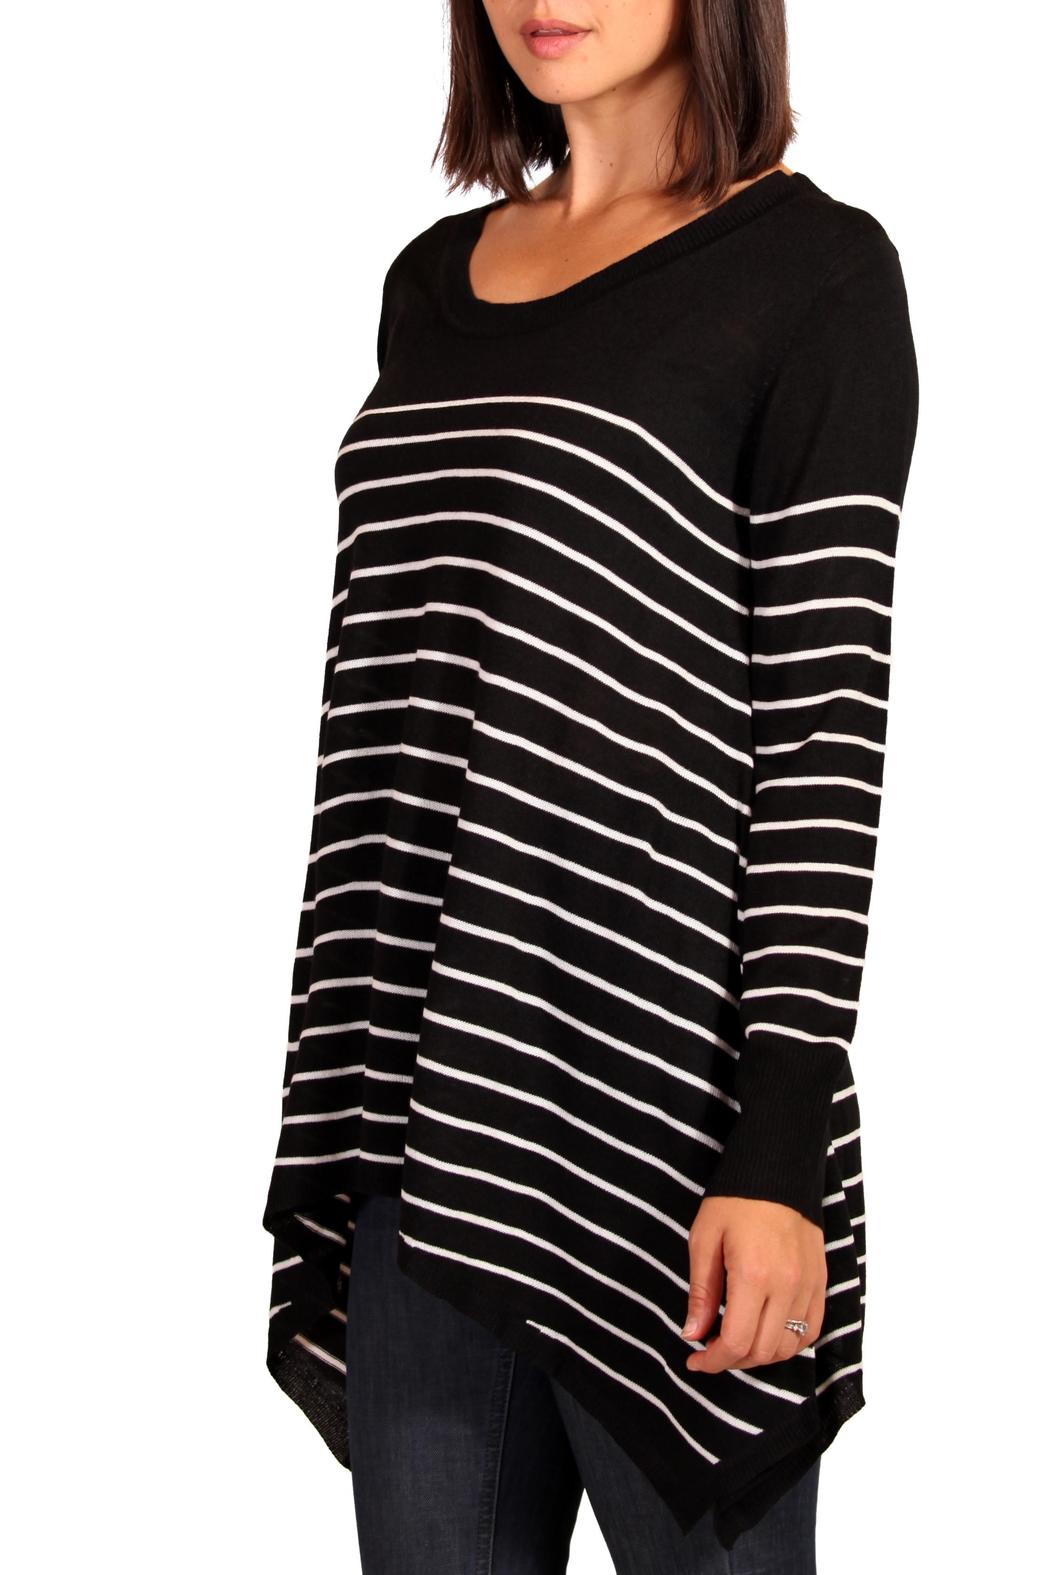 L. Love Breton Swing Sweater from Los Angeles by Goldie's — Shoptiques